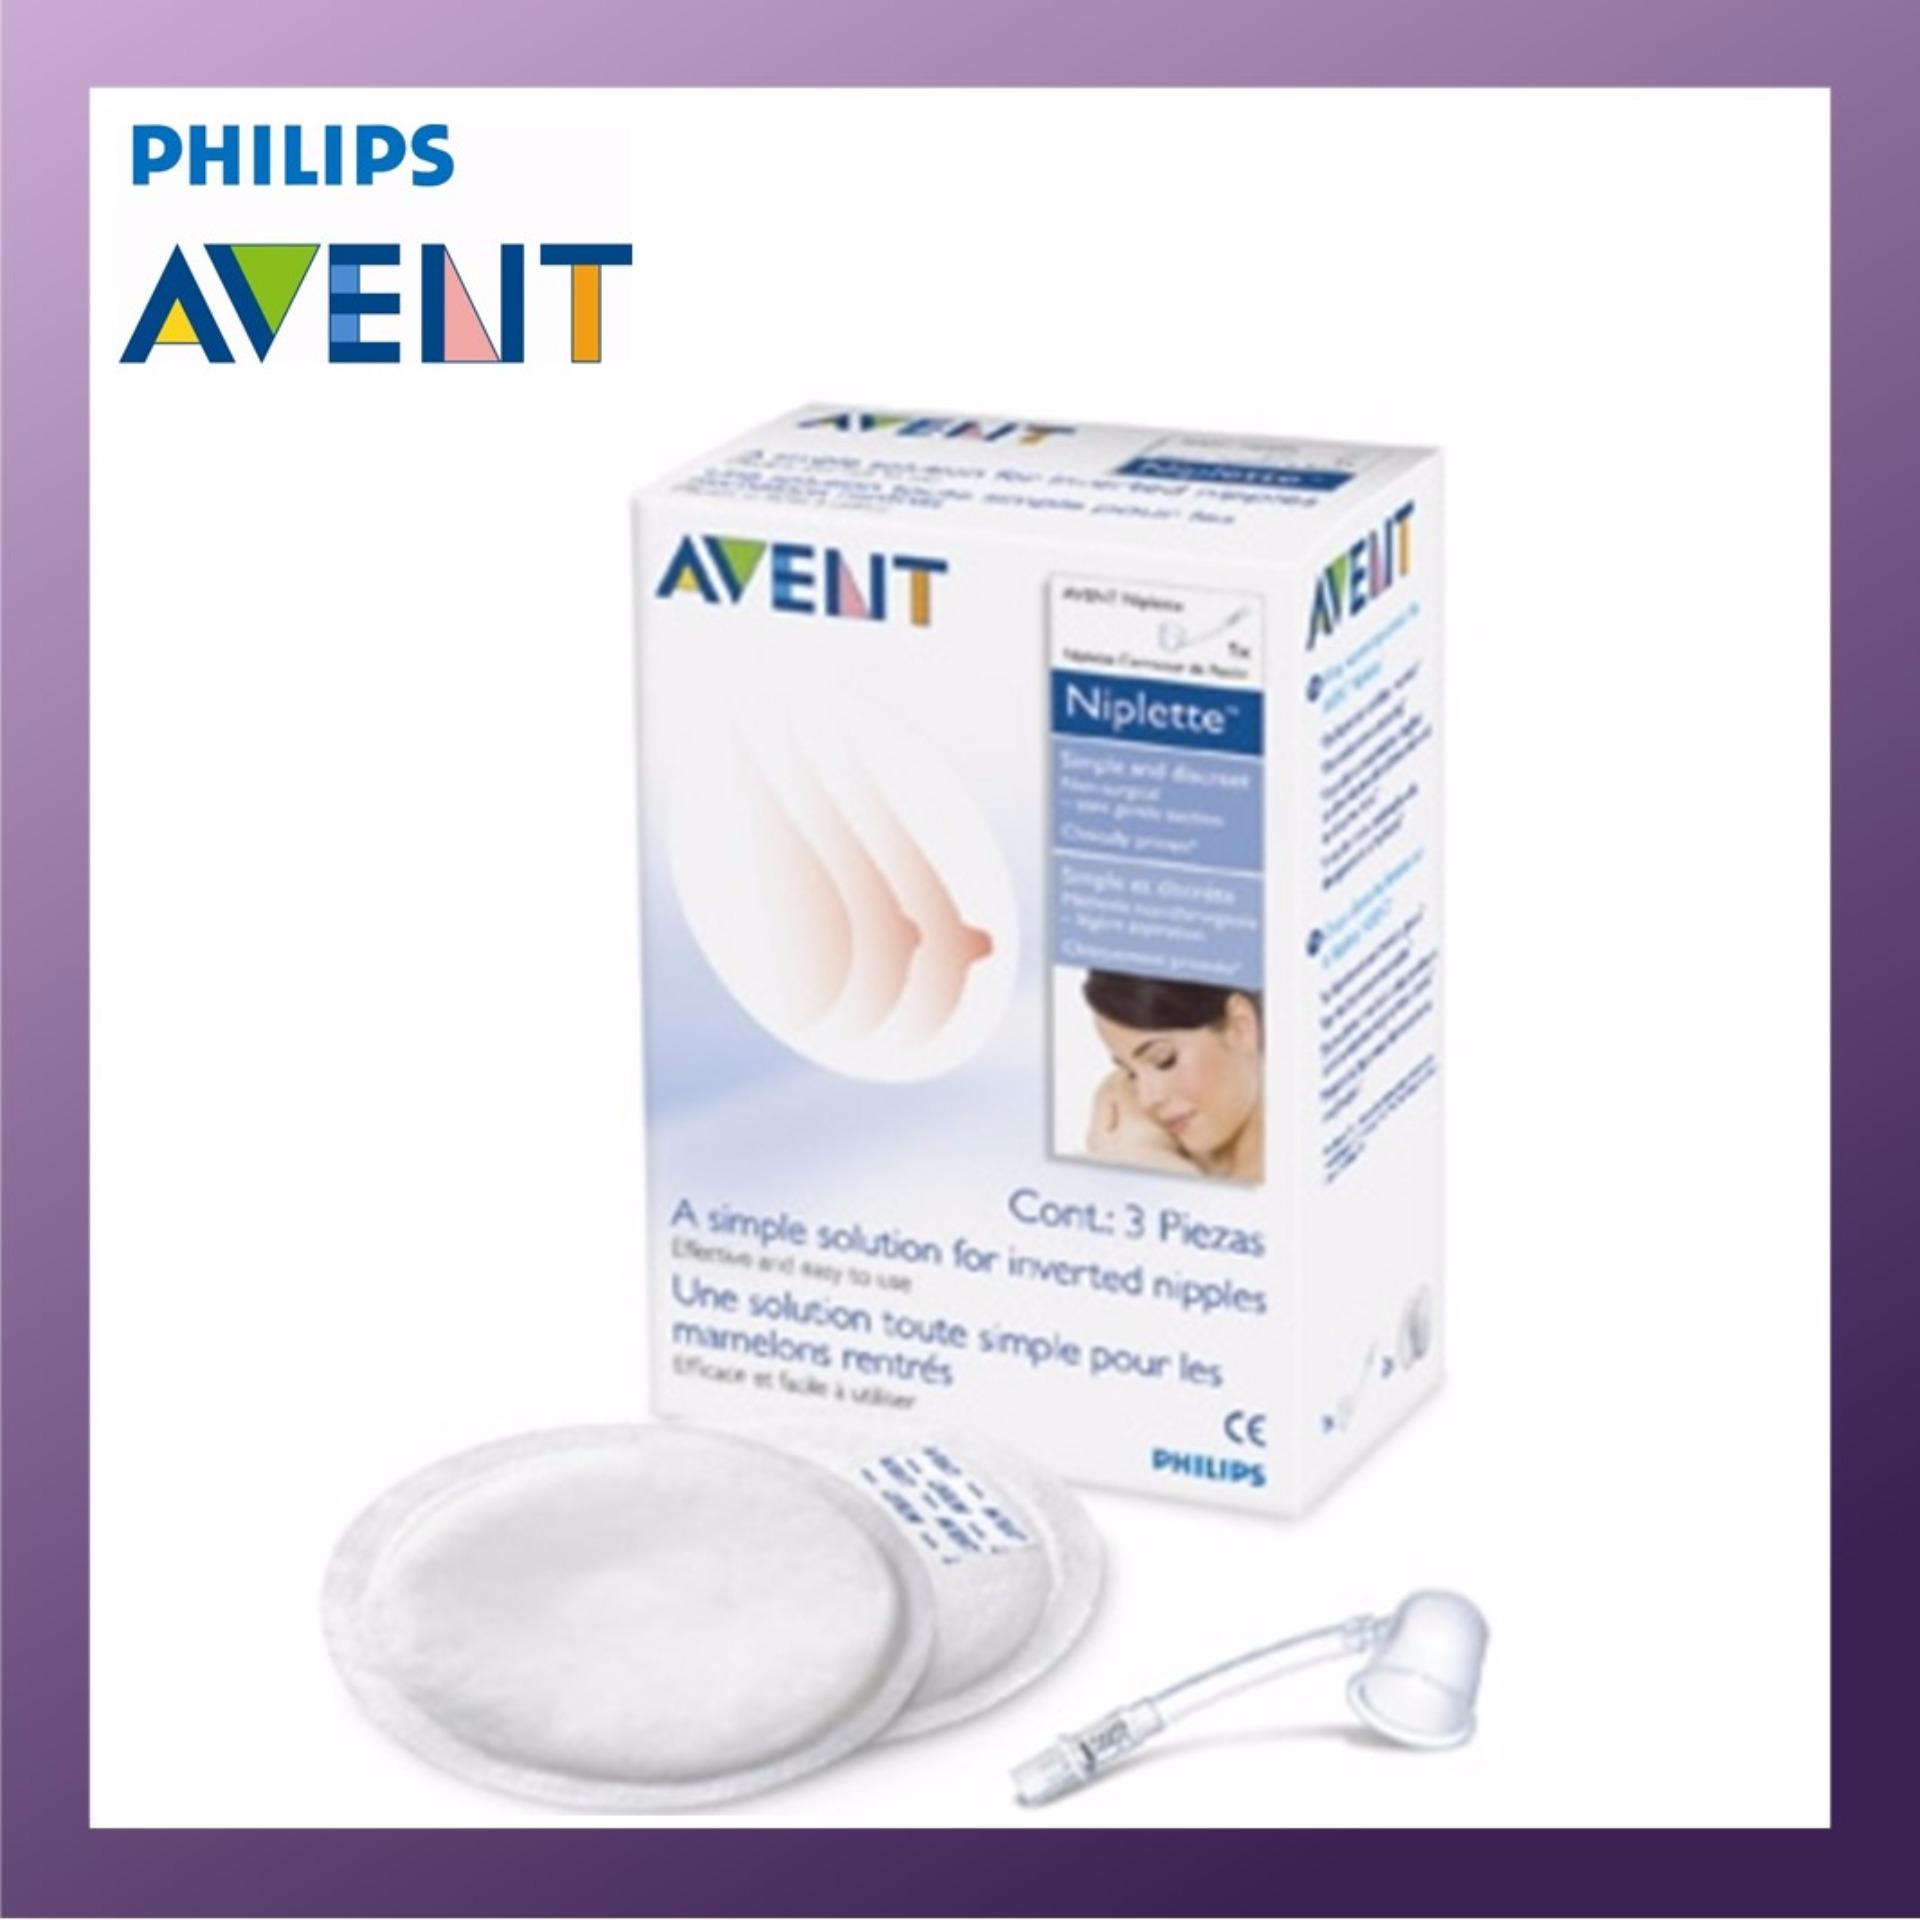 Philips Avent Niplette Lowest Price